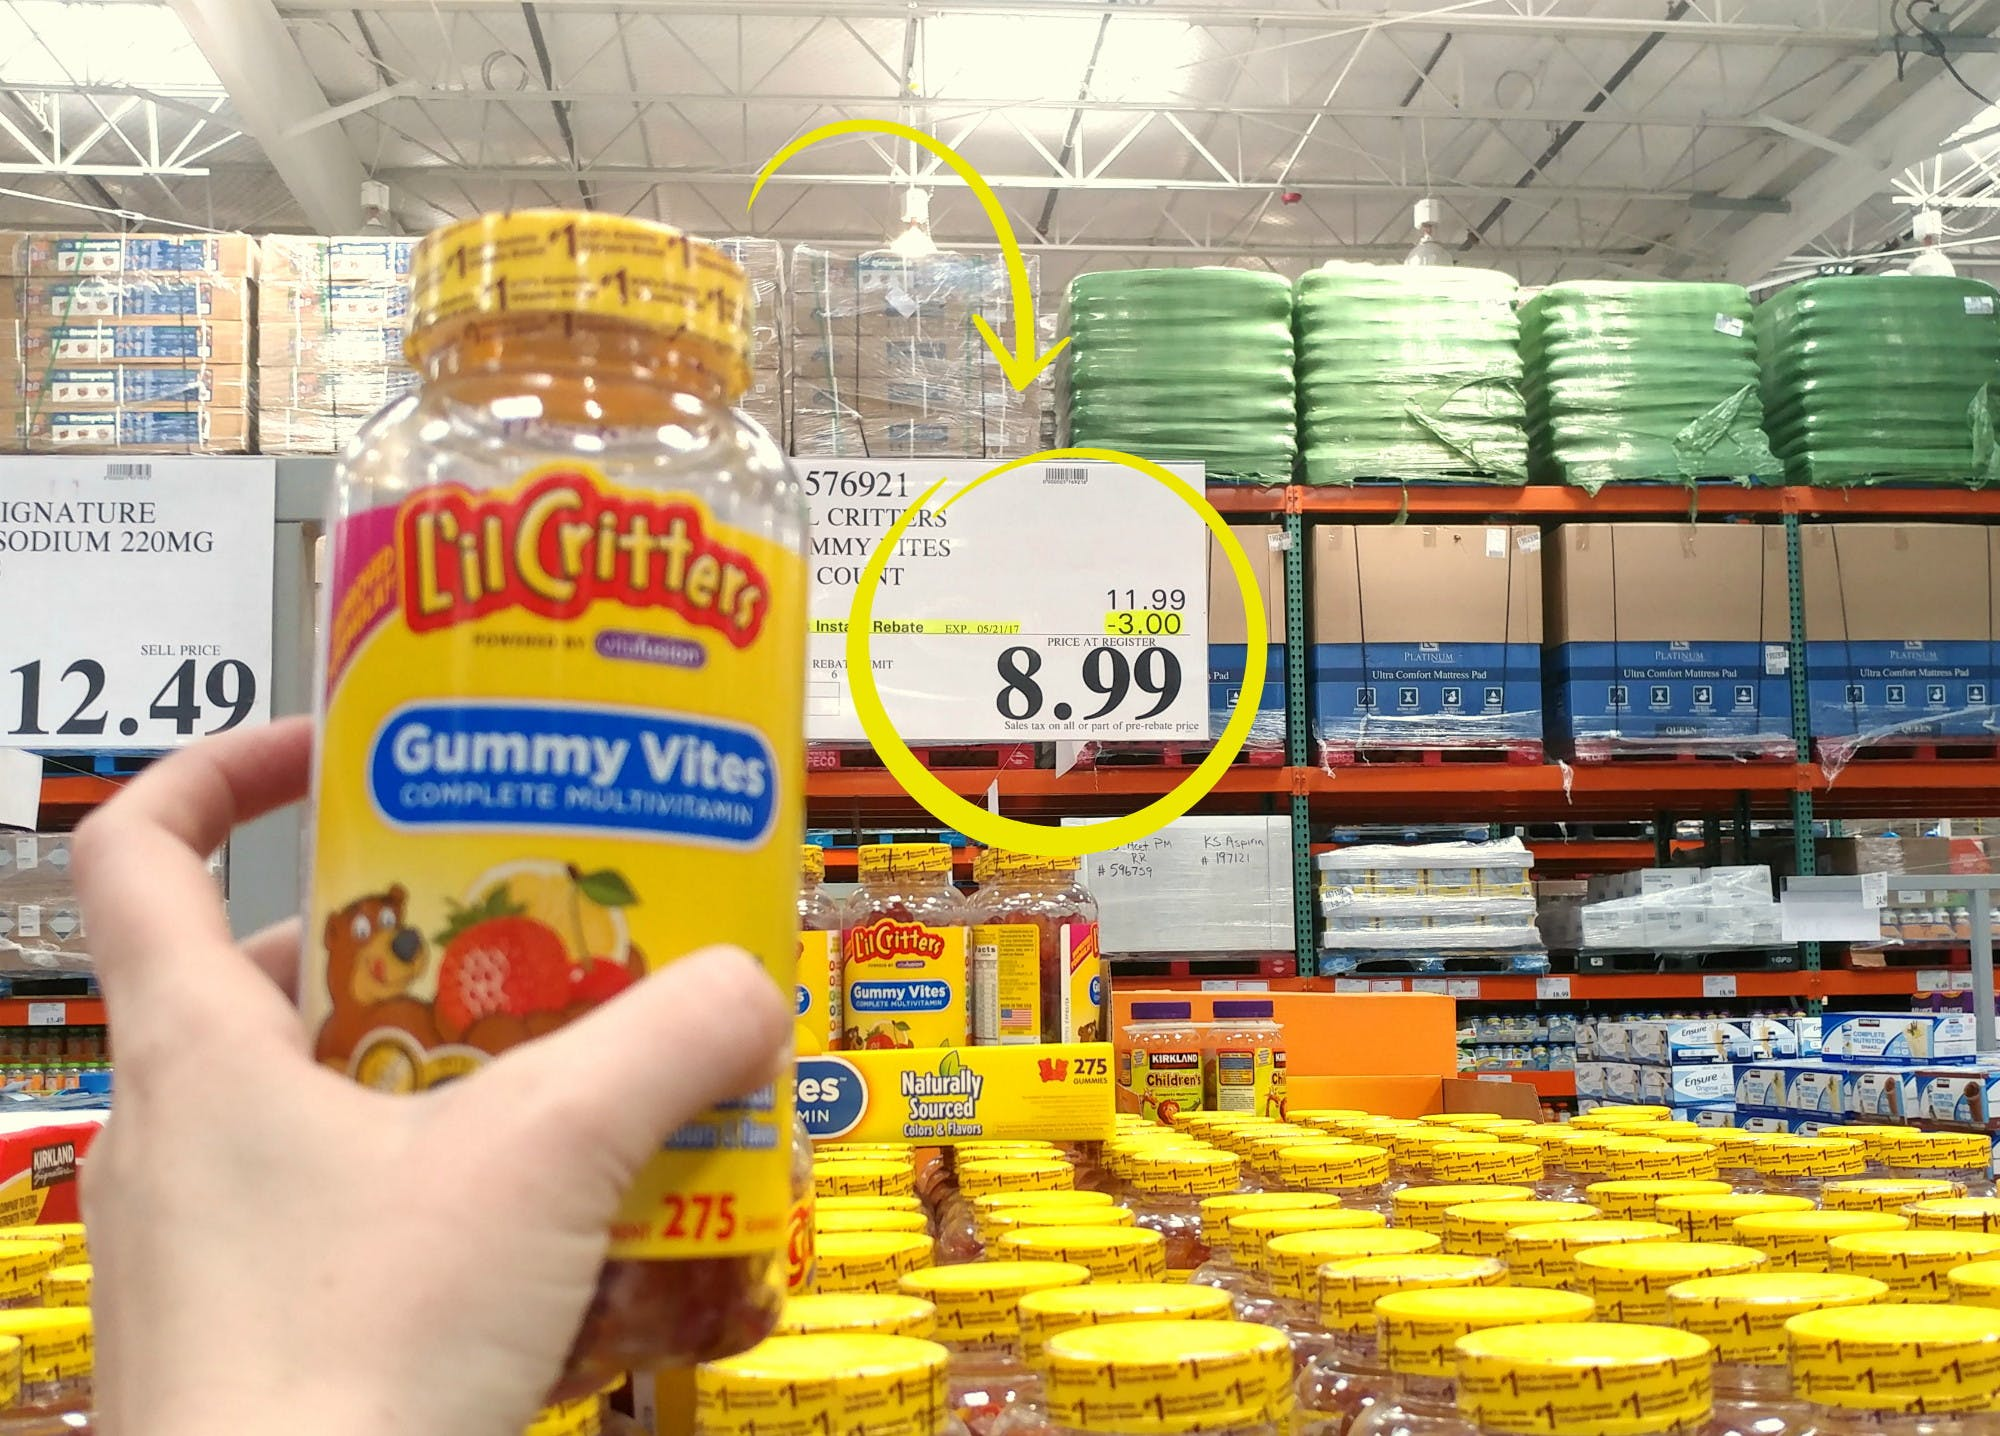 7 Best Health And Beauty Deals At Costco The Krazy Coupon Lady